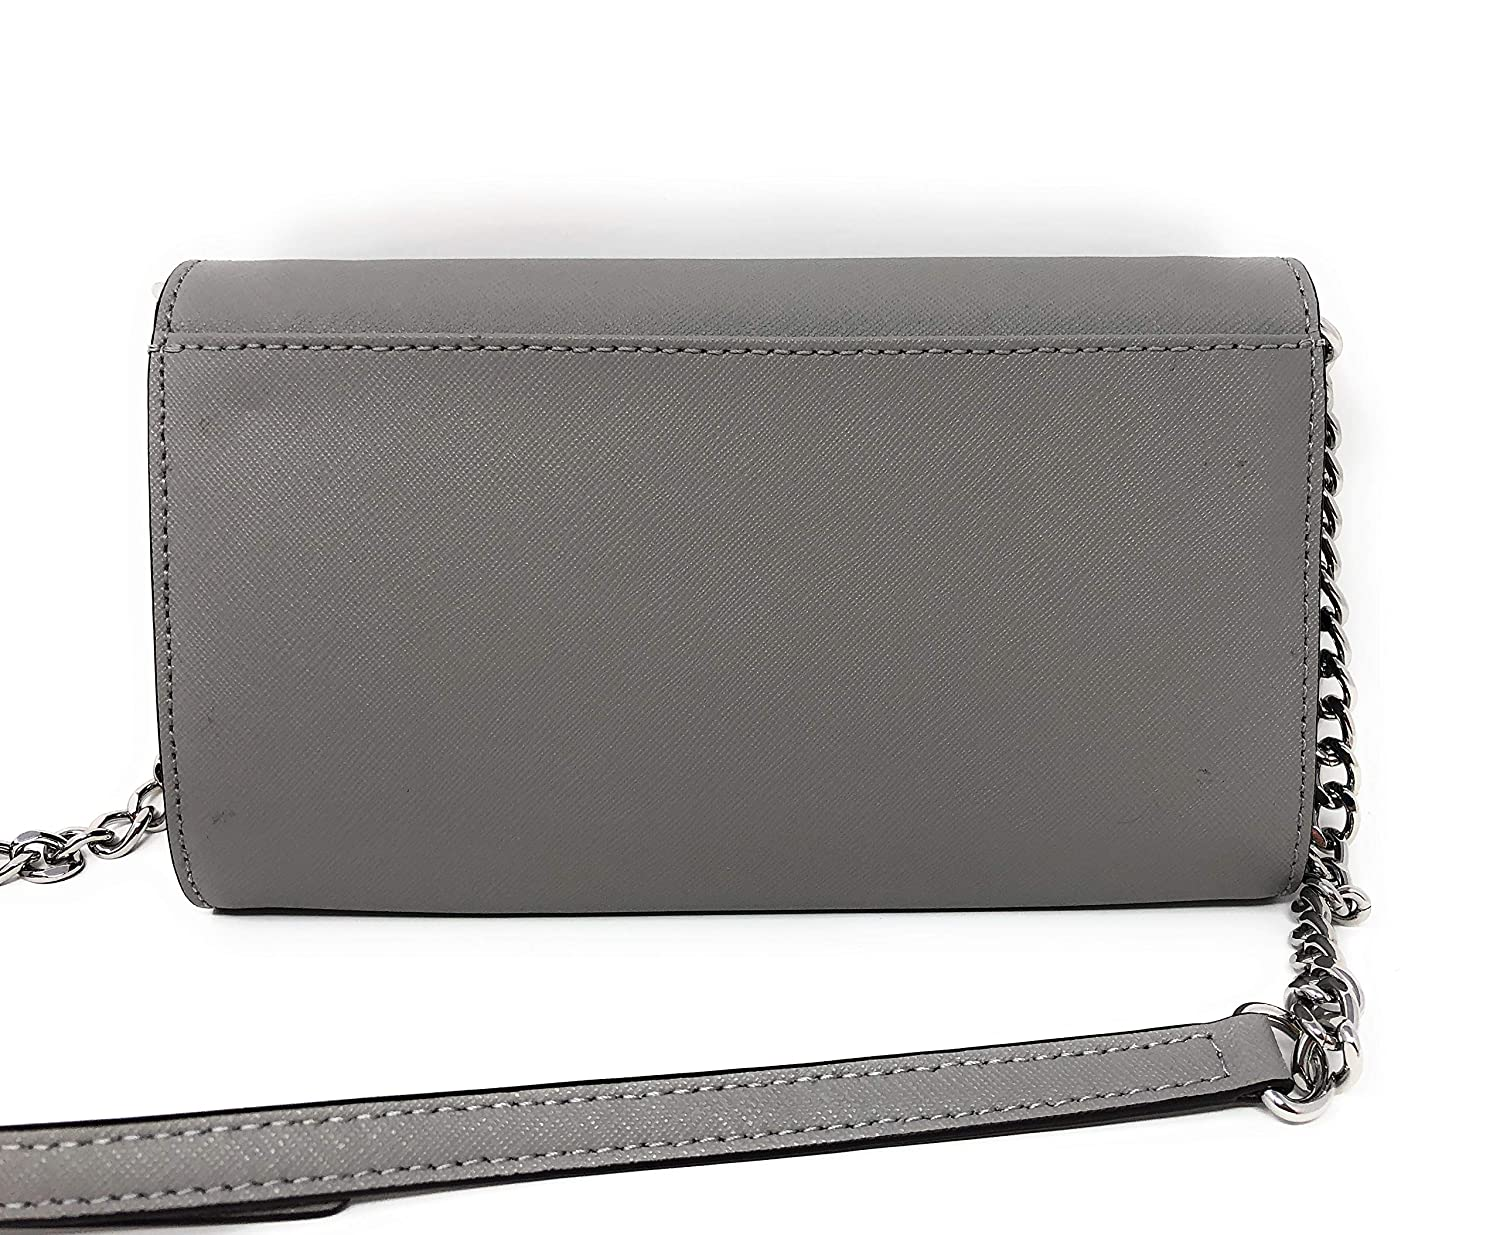 bf3c1097d5f2 Amazon.com  Michael Kor Jet Set Large Phone Crossbody Wallet Pearl Grey  Saffiano  Clothing